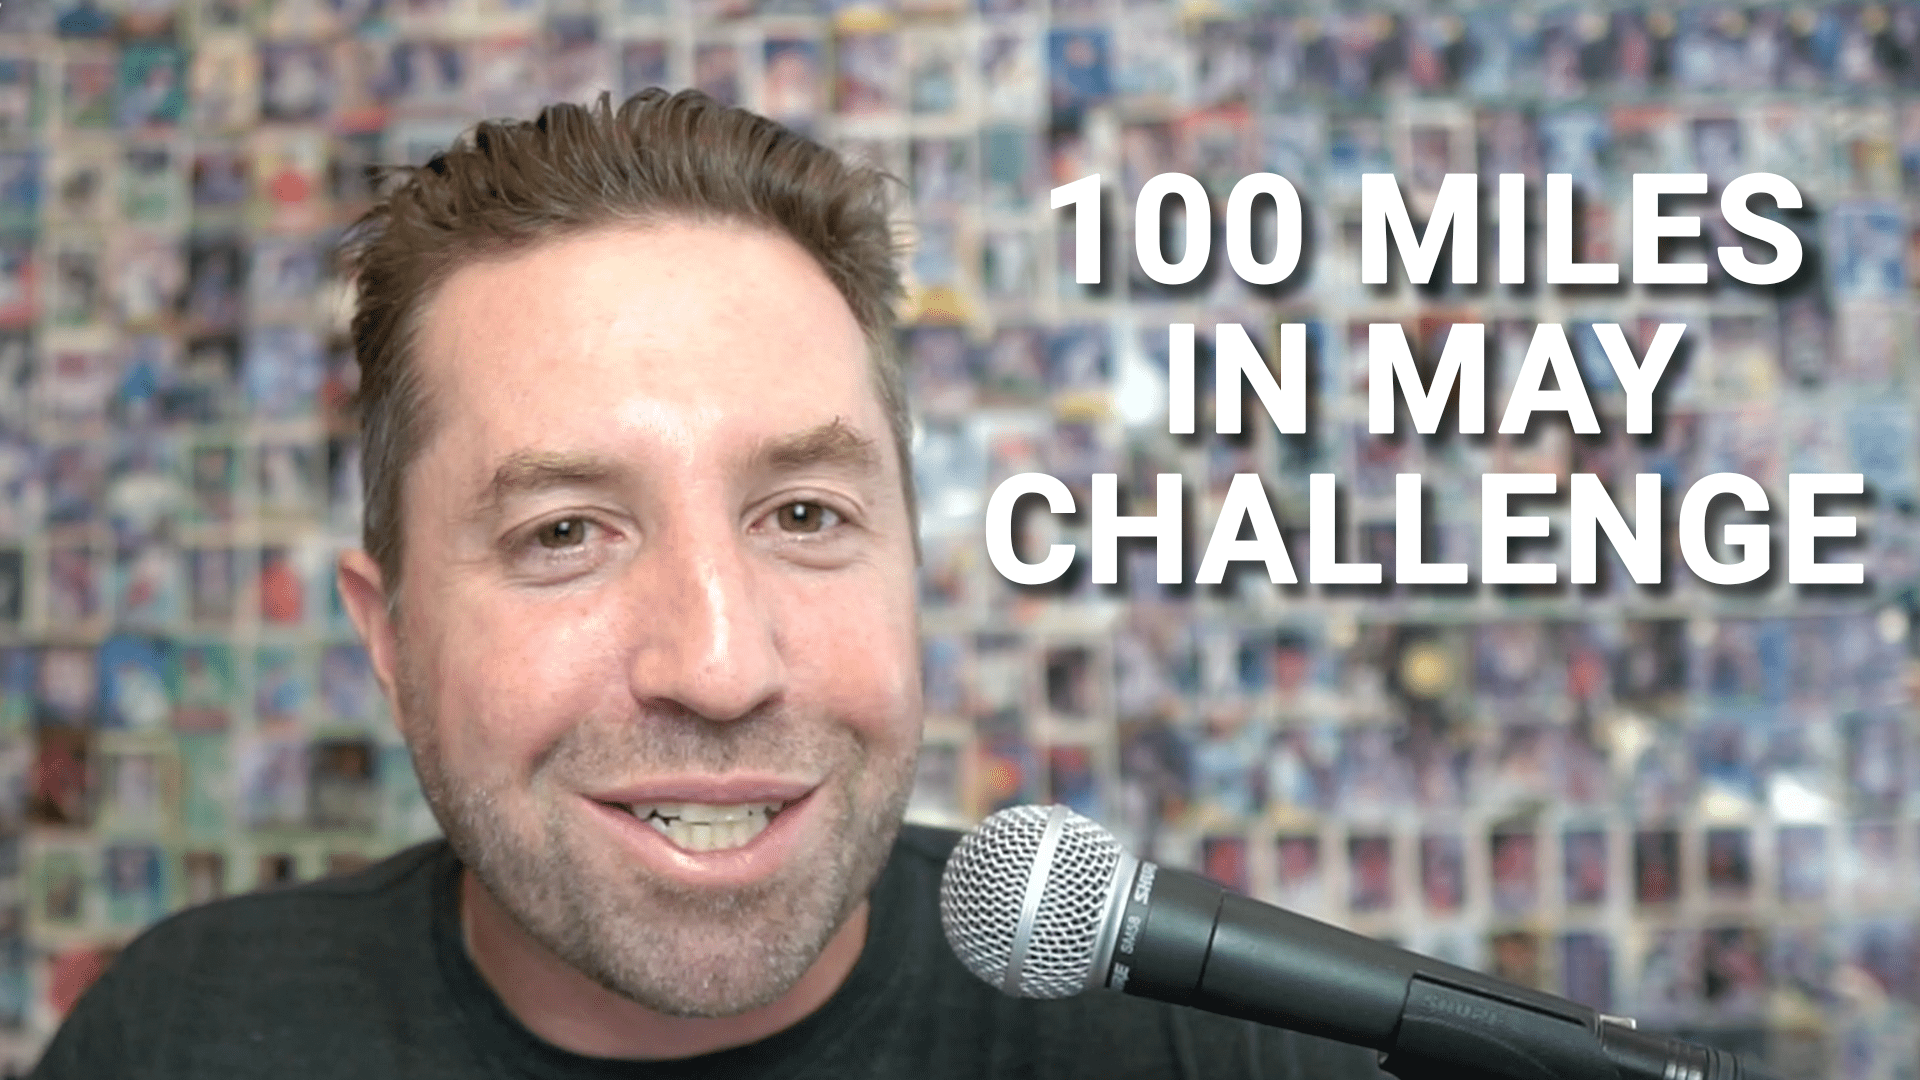 100 miles in may challenge